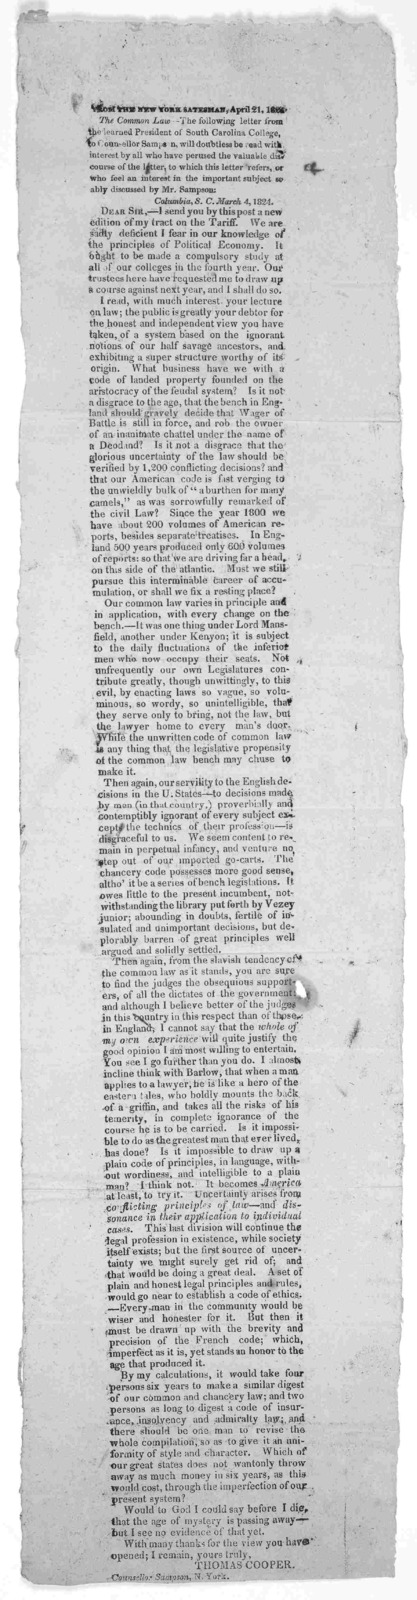 From the New York Statesman, April 21, 1824. The Common law.- The following letter from the learned president of South Carolina College to Counsellor Sampson, will doubtless be read with interest by all who have perused the valuable discourse of